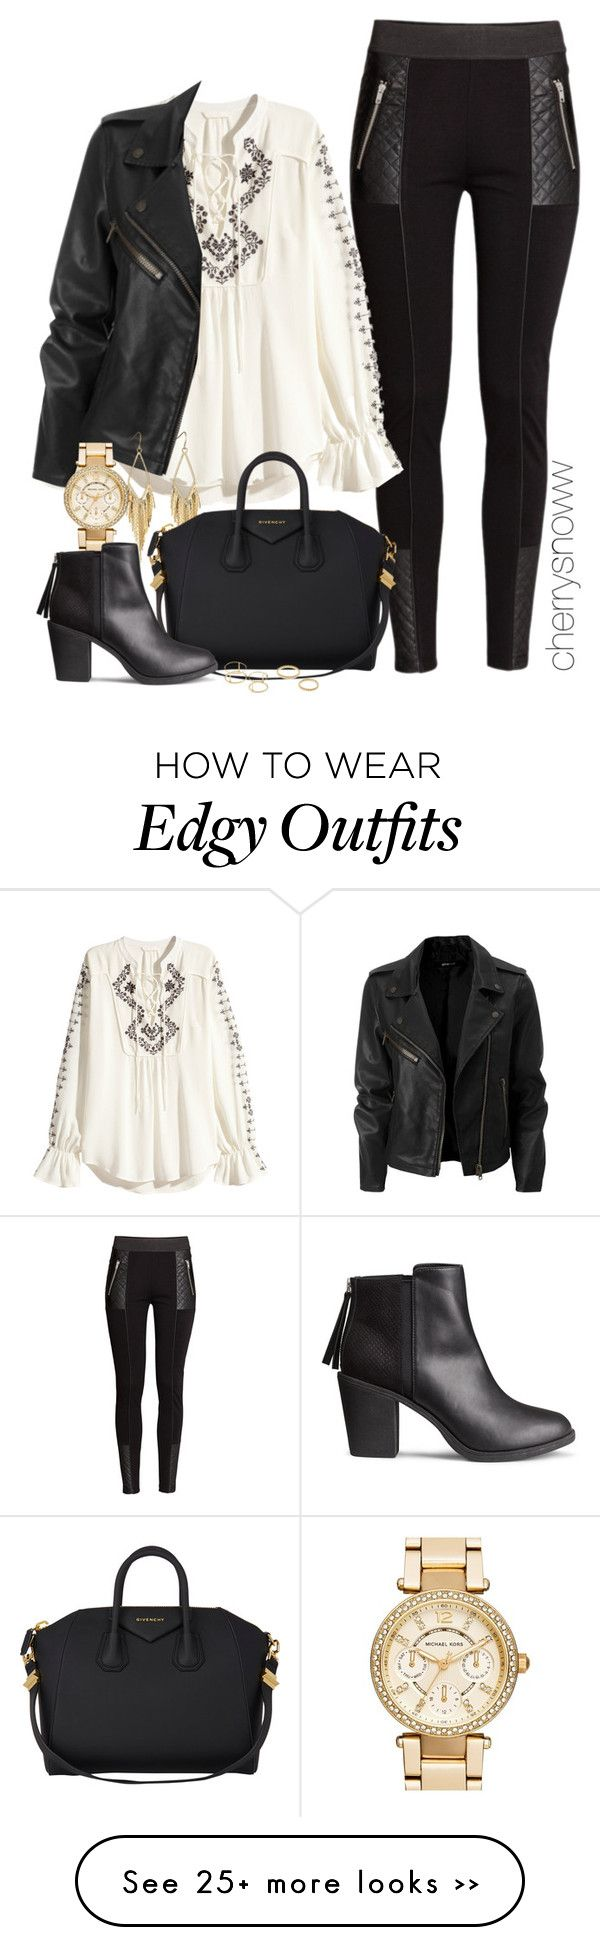 """Edgy boho chic fall outfit"" by cherrysnoww on Polyvore"